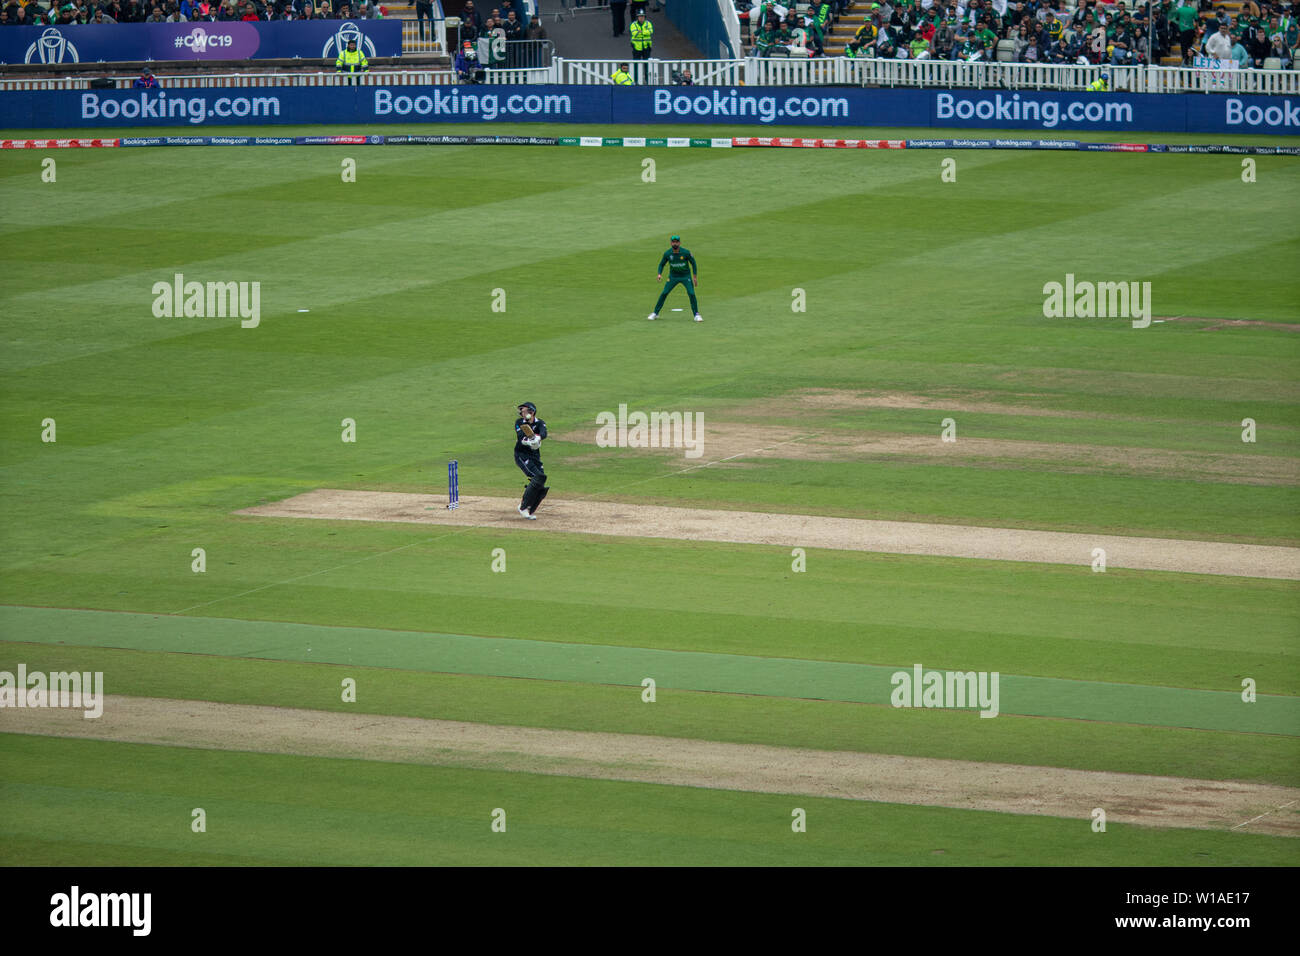 28th June 2019 - New Zealand batsman pulling the ball for four runs during their 2019 ICC Cricket World Cup game against Pakistan at Edgbaston, UK Stock Photo